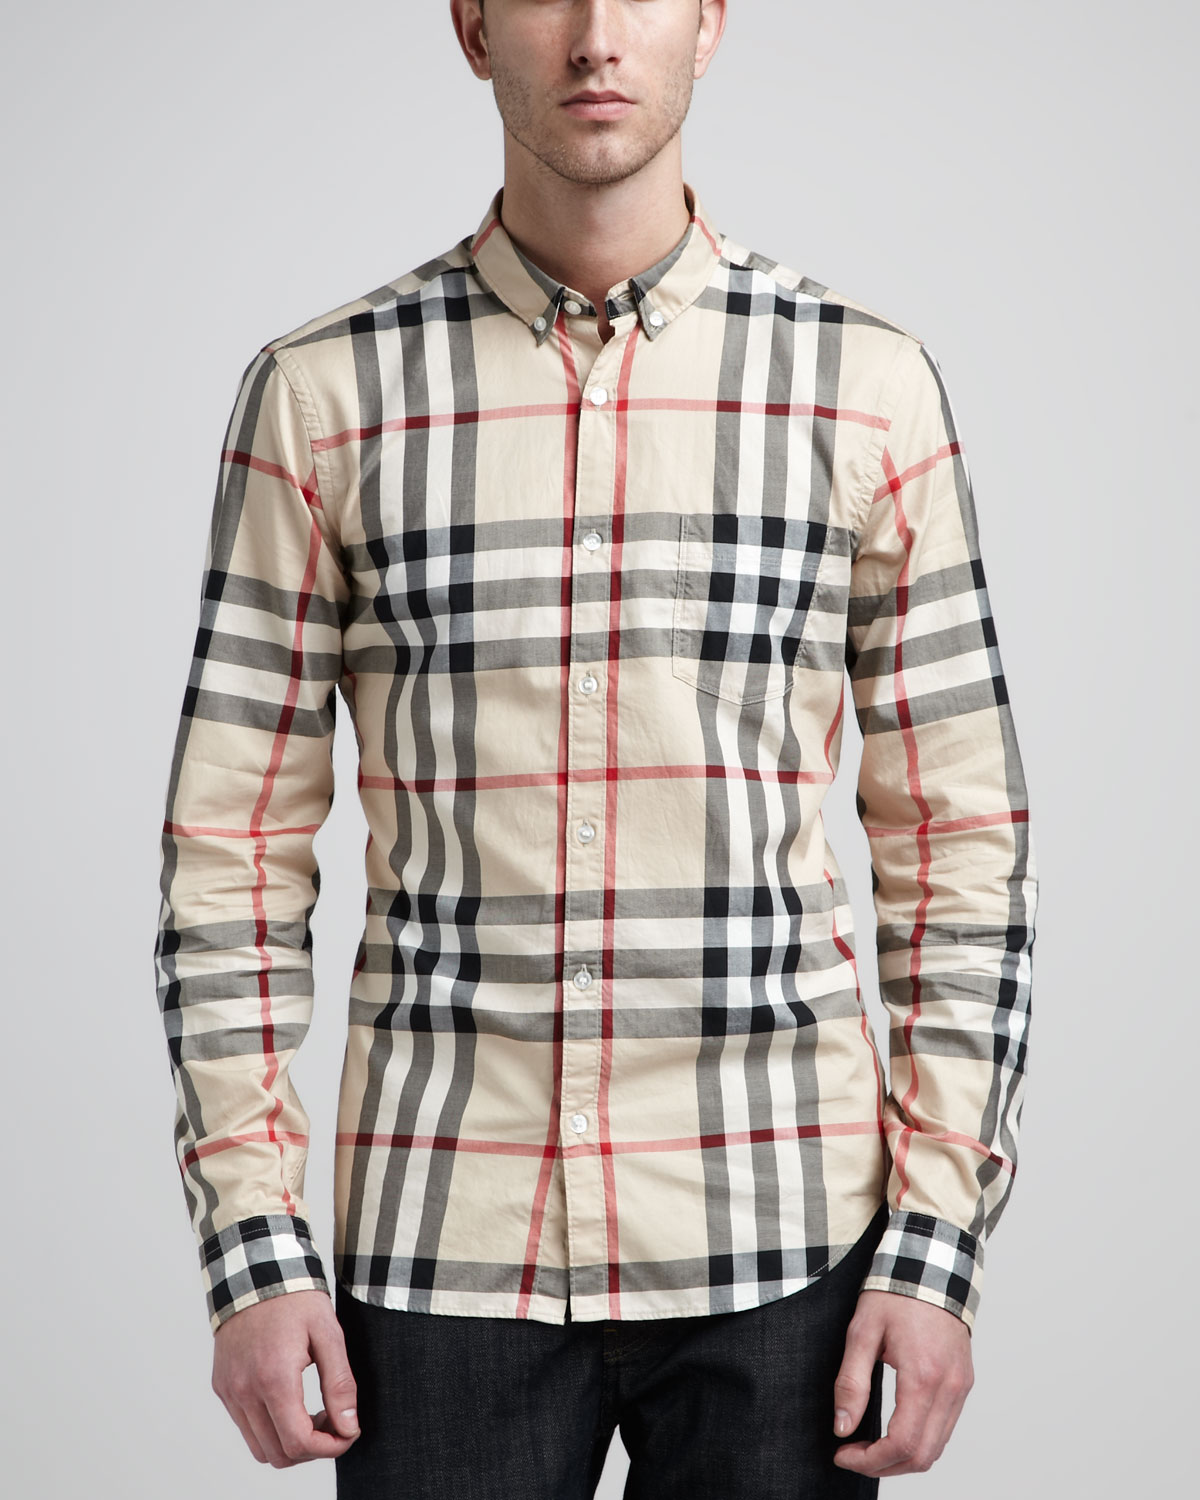 How To Style Male Check Shirts – A check shirt is a staple item in a man's wardrobe. It can be worn in a ton of different ways, for both daytime and evening occasions. It can be worn in a ton of different ways, for both daytime and evening occasions.